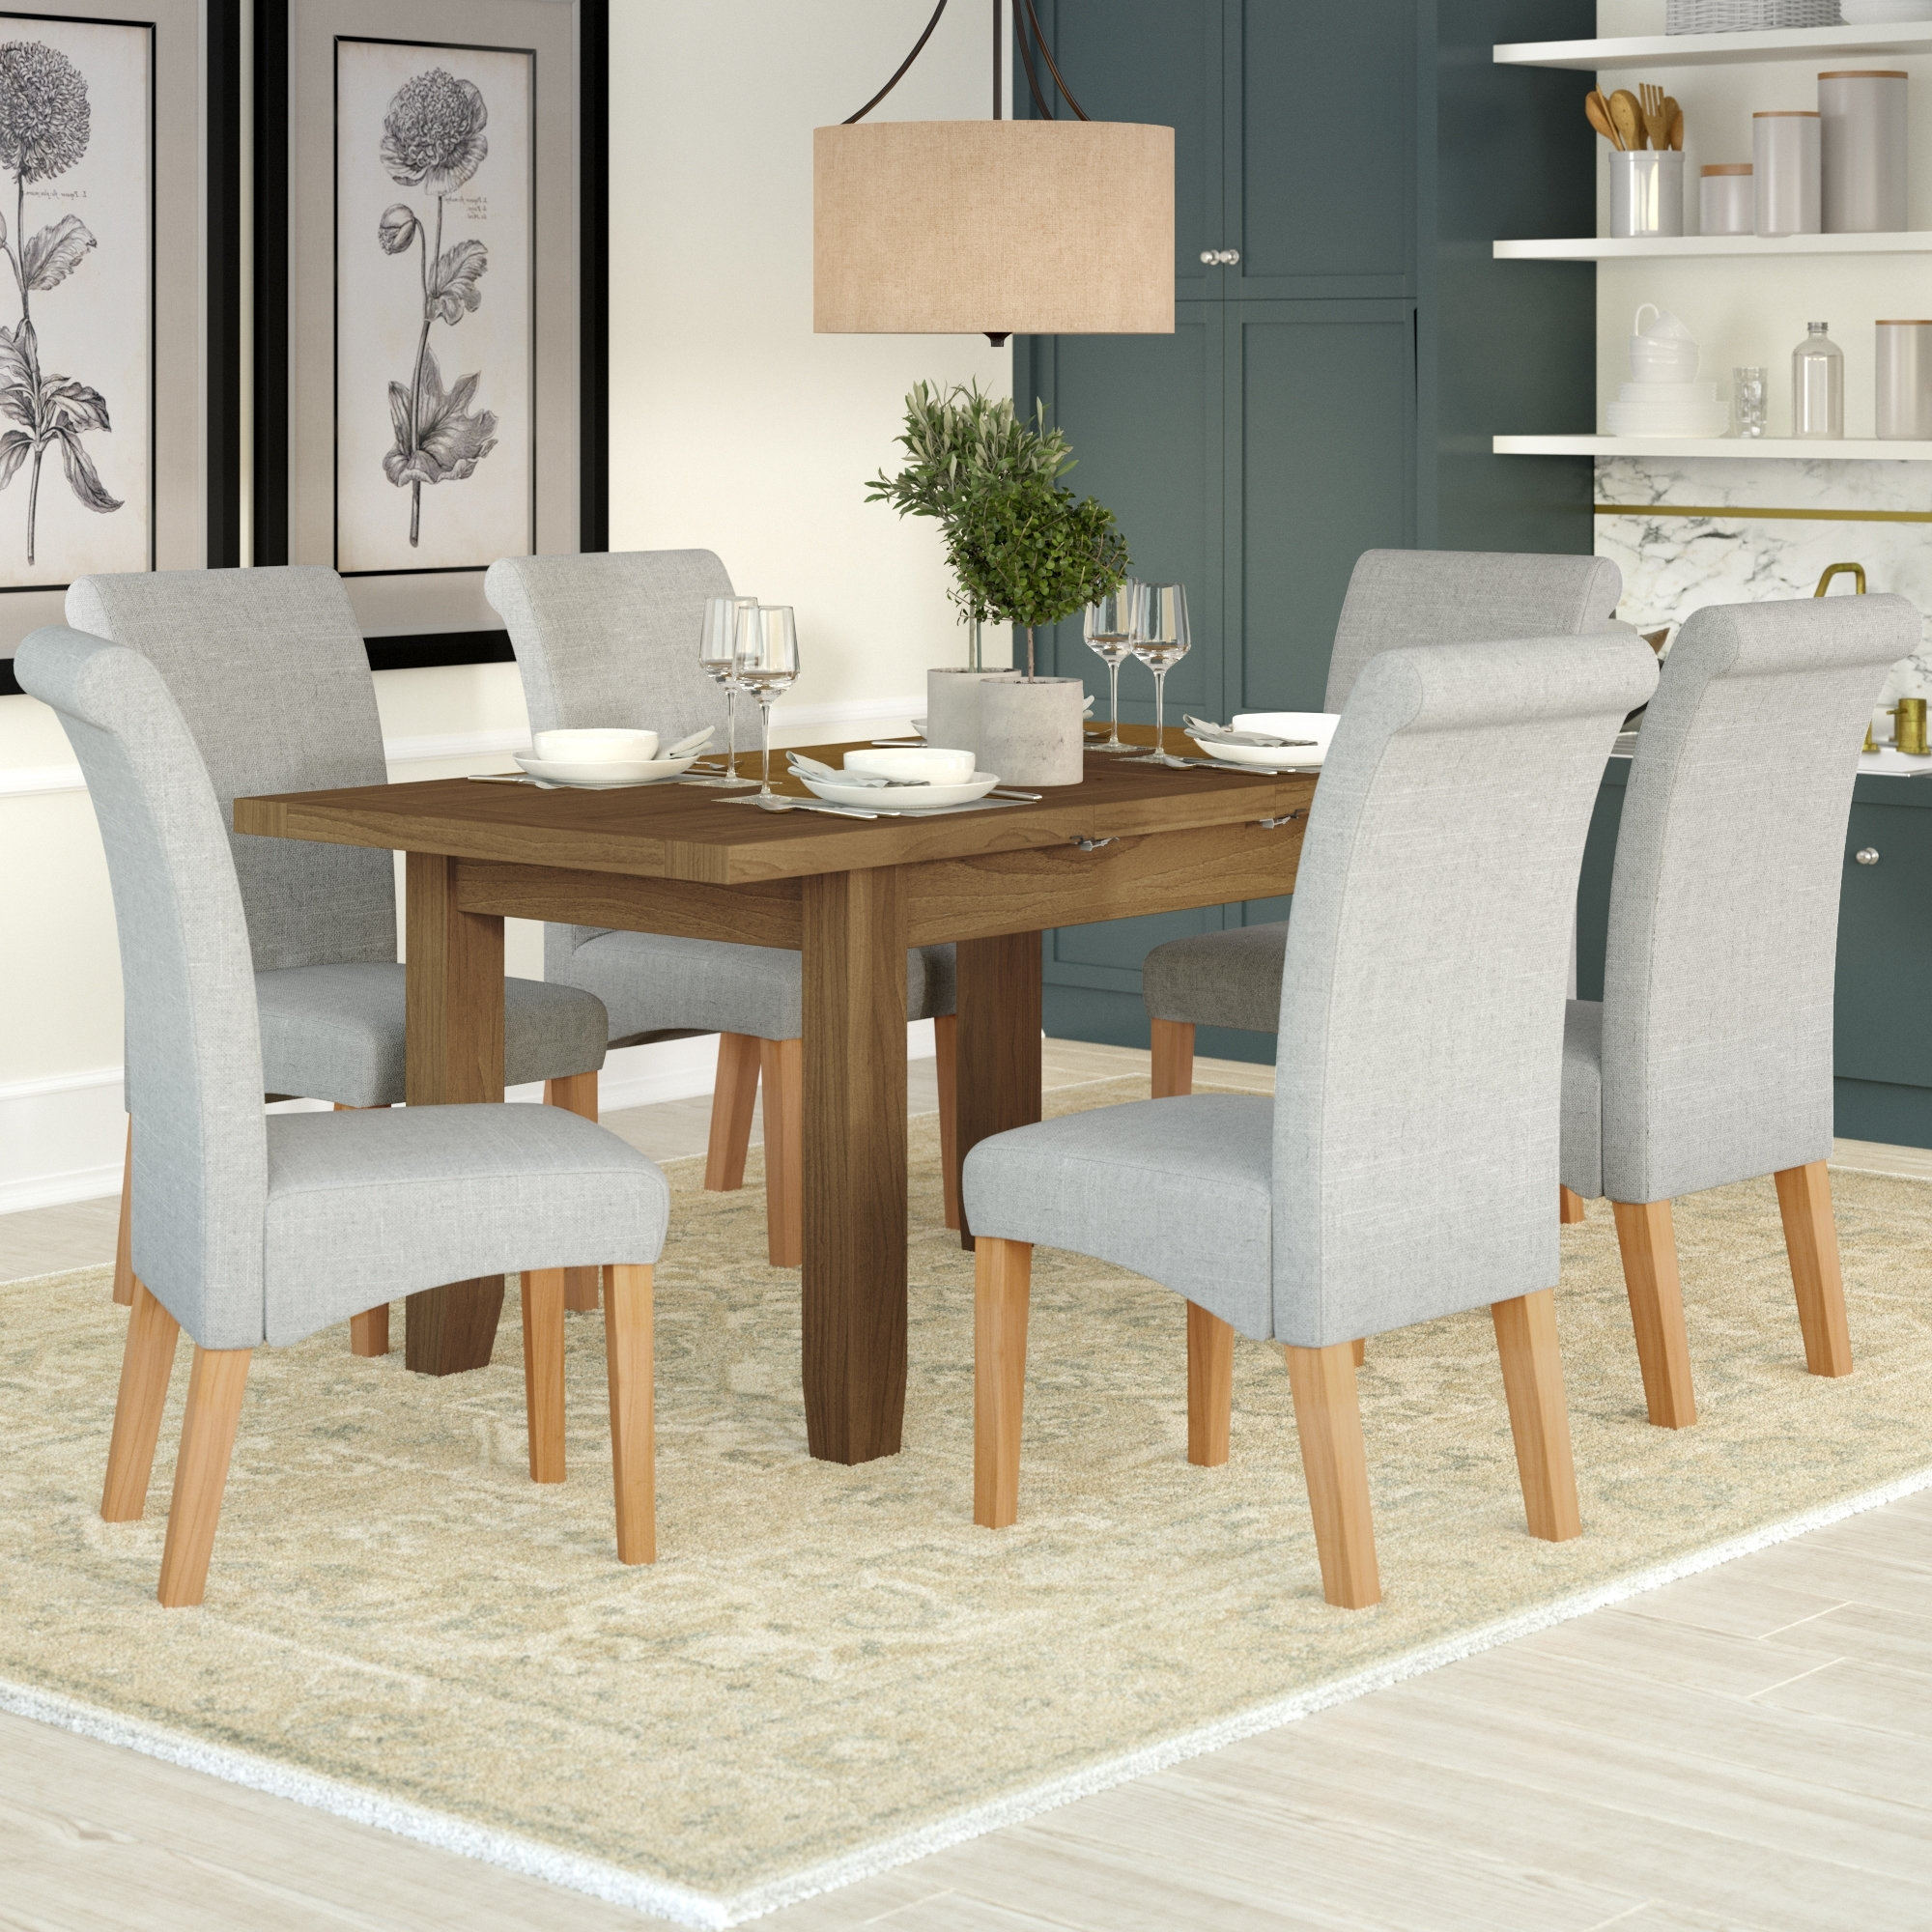 Three Posts Berwick Extendable Dining Table And 6 Chairs & Reviews Intended For Most Current Extendable Dining Tables 6 Chairs (View 11 of 25)